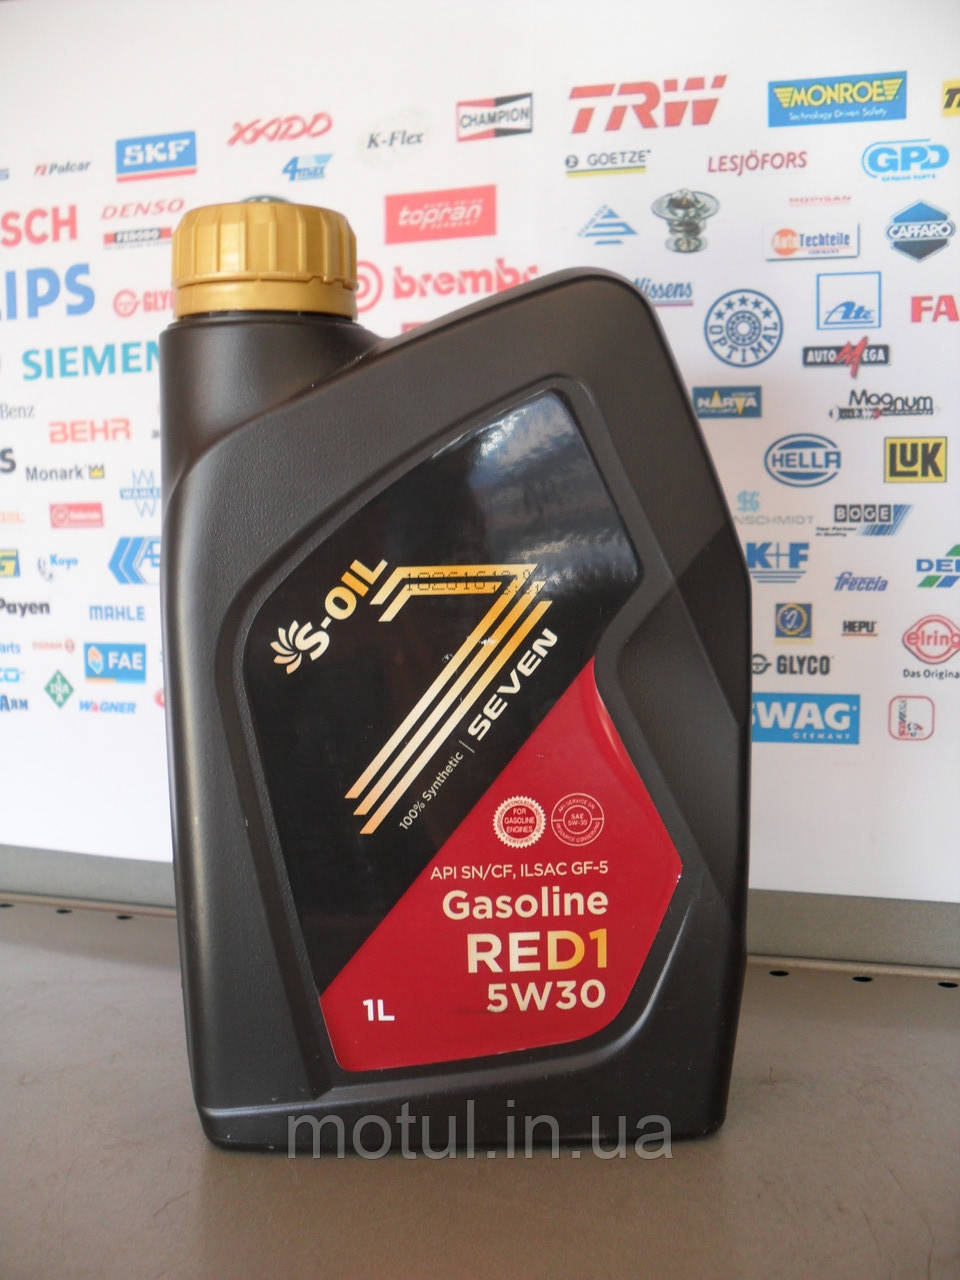 Моторне масло S-oil seven red1 5w30